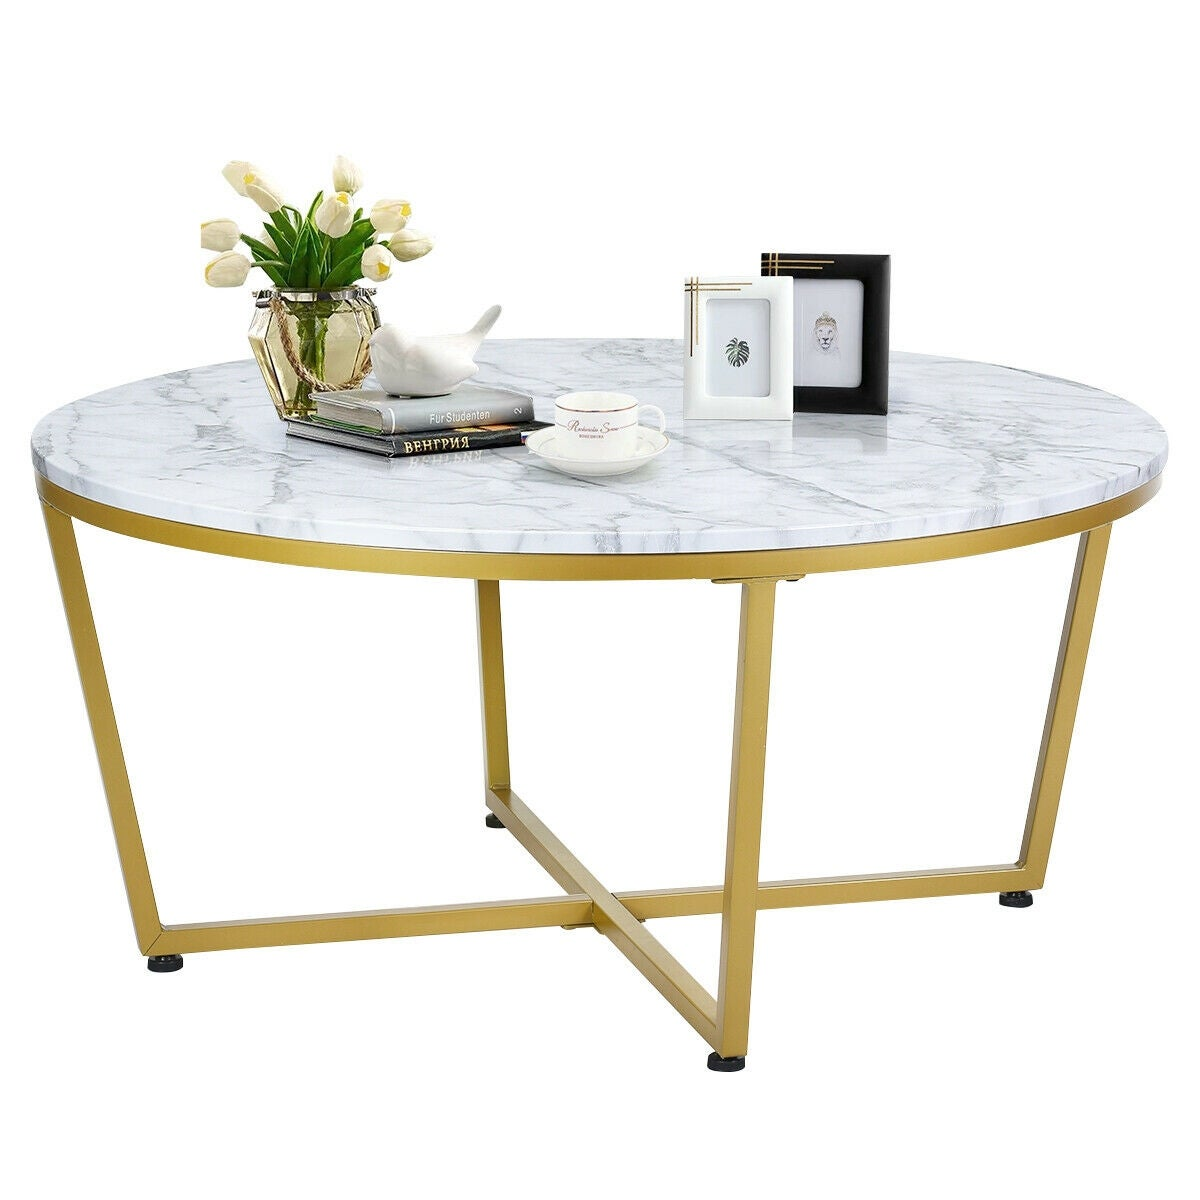 Gymax Modern Round Coffee Table Faux Marble Top W Gold Metal Base Living Room As Pic Overstock 28764052